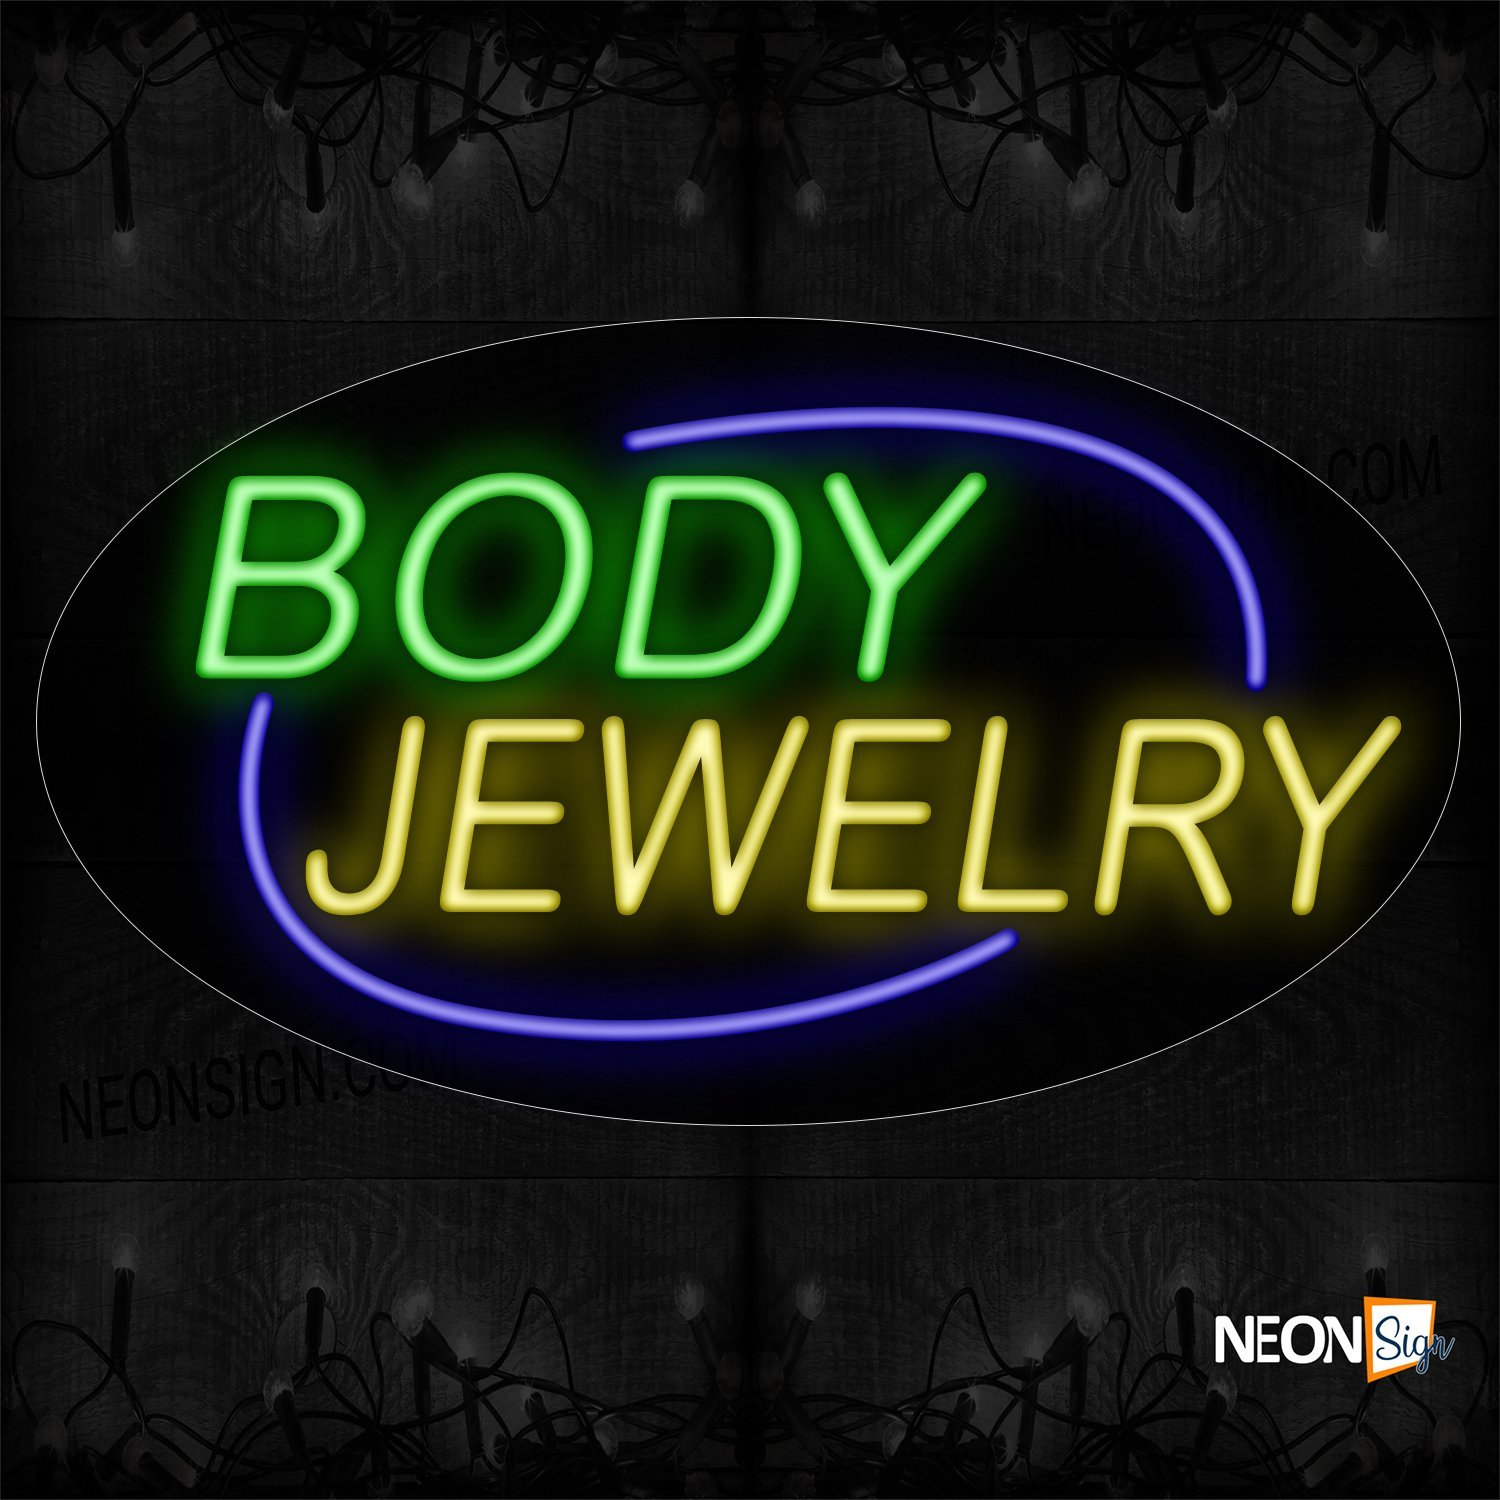 Image of 14155 Body Jewelry With Blue Arc Border Neon Sign_17x30 Contoured Black Backing